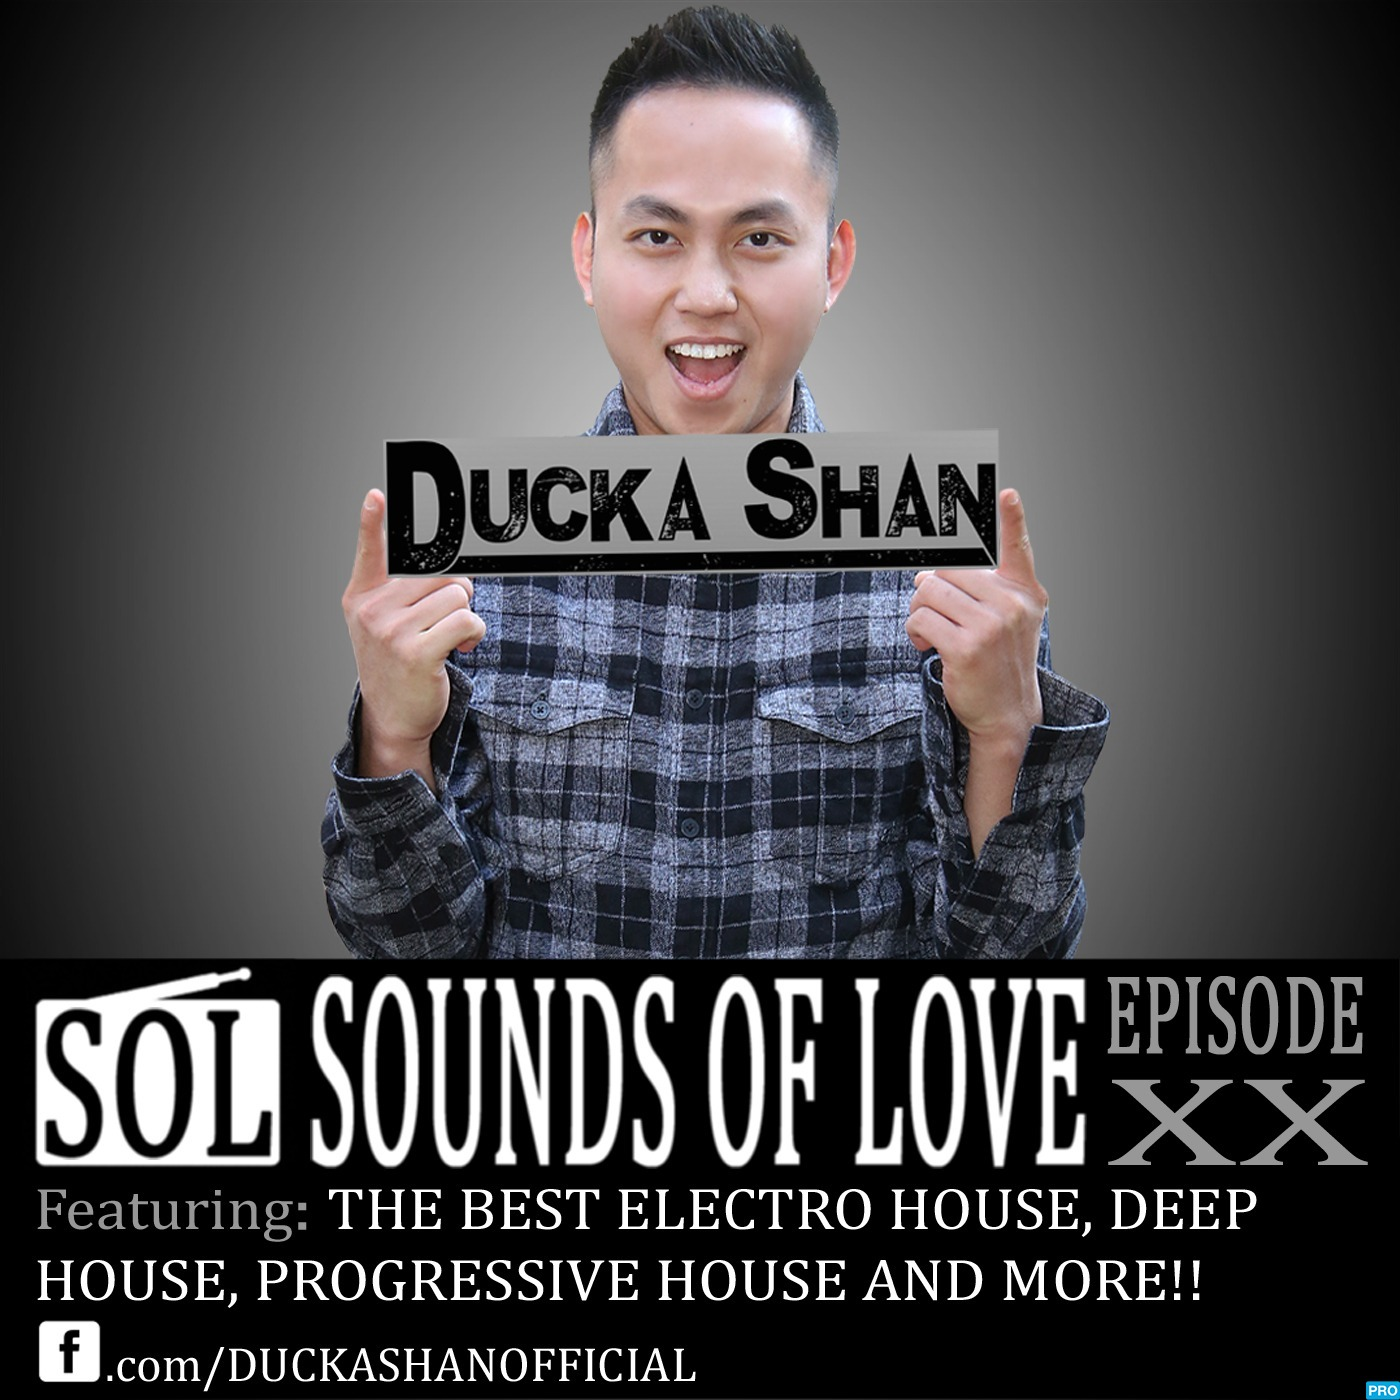 Ducka Shan - Sounds of Love